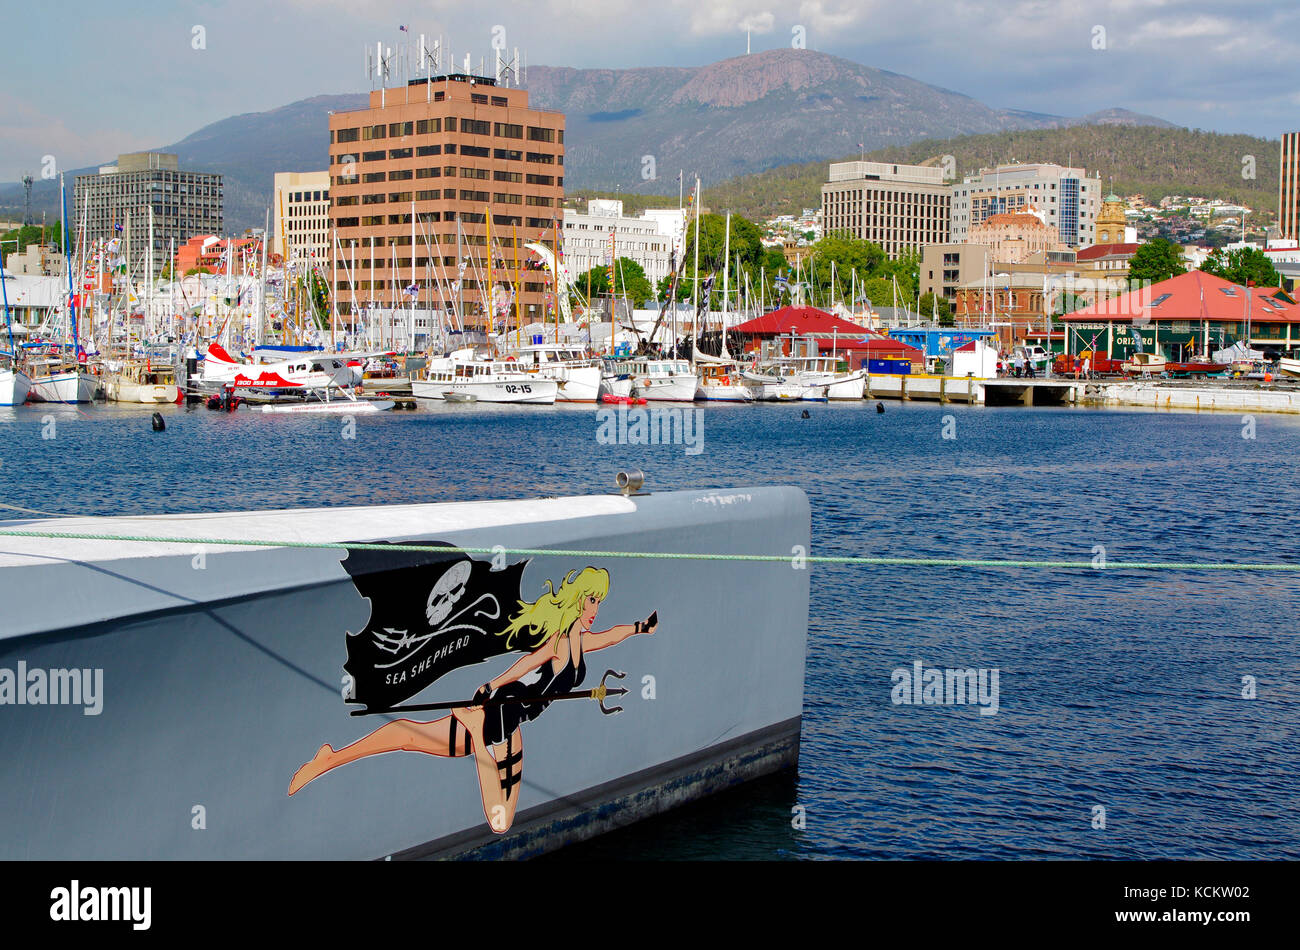 Bow of the MV Brigitte Bardot, trimaran taking time to recuperate and resupply during the Sea Shepherd Conservation - Stock Image